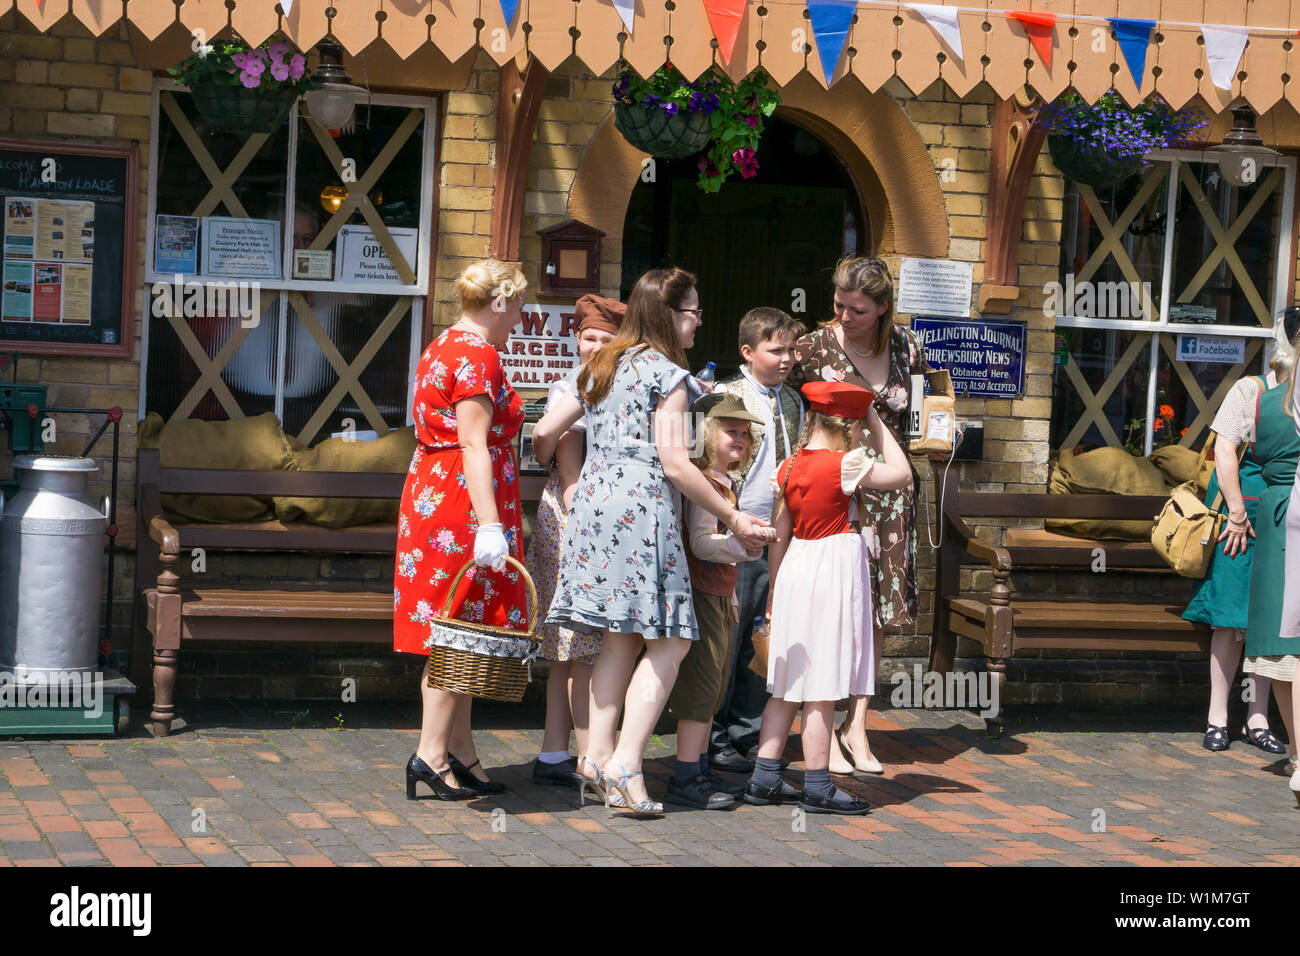 Kidderminster, UK. 29th June, 2019. Severn Valley Railways 'Step back to the 1940's' gets off to a fabulous start this weekend with costumed re-enactors playing their part in providing an authentic recreation of wartime Britain. Evacuee children here being collected at a vintage railway station by their host families. Credit: Lee Hudson - Stock Image